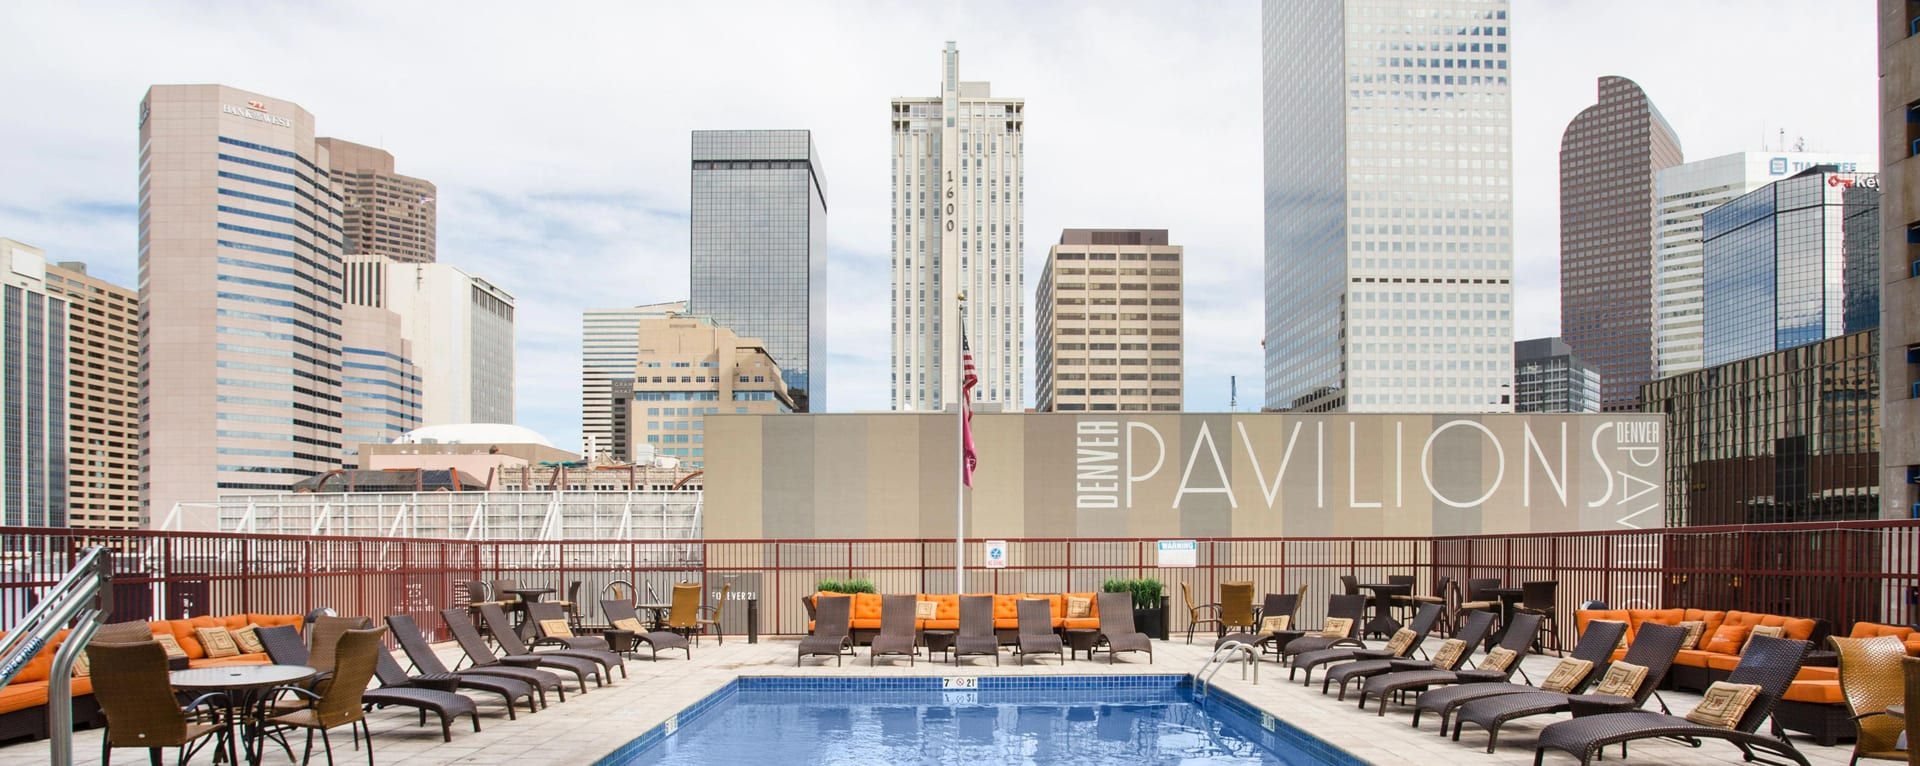 Downtown Denver Hotel with Pool